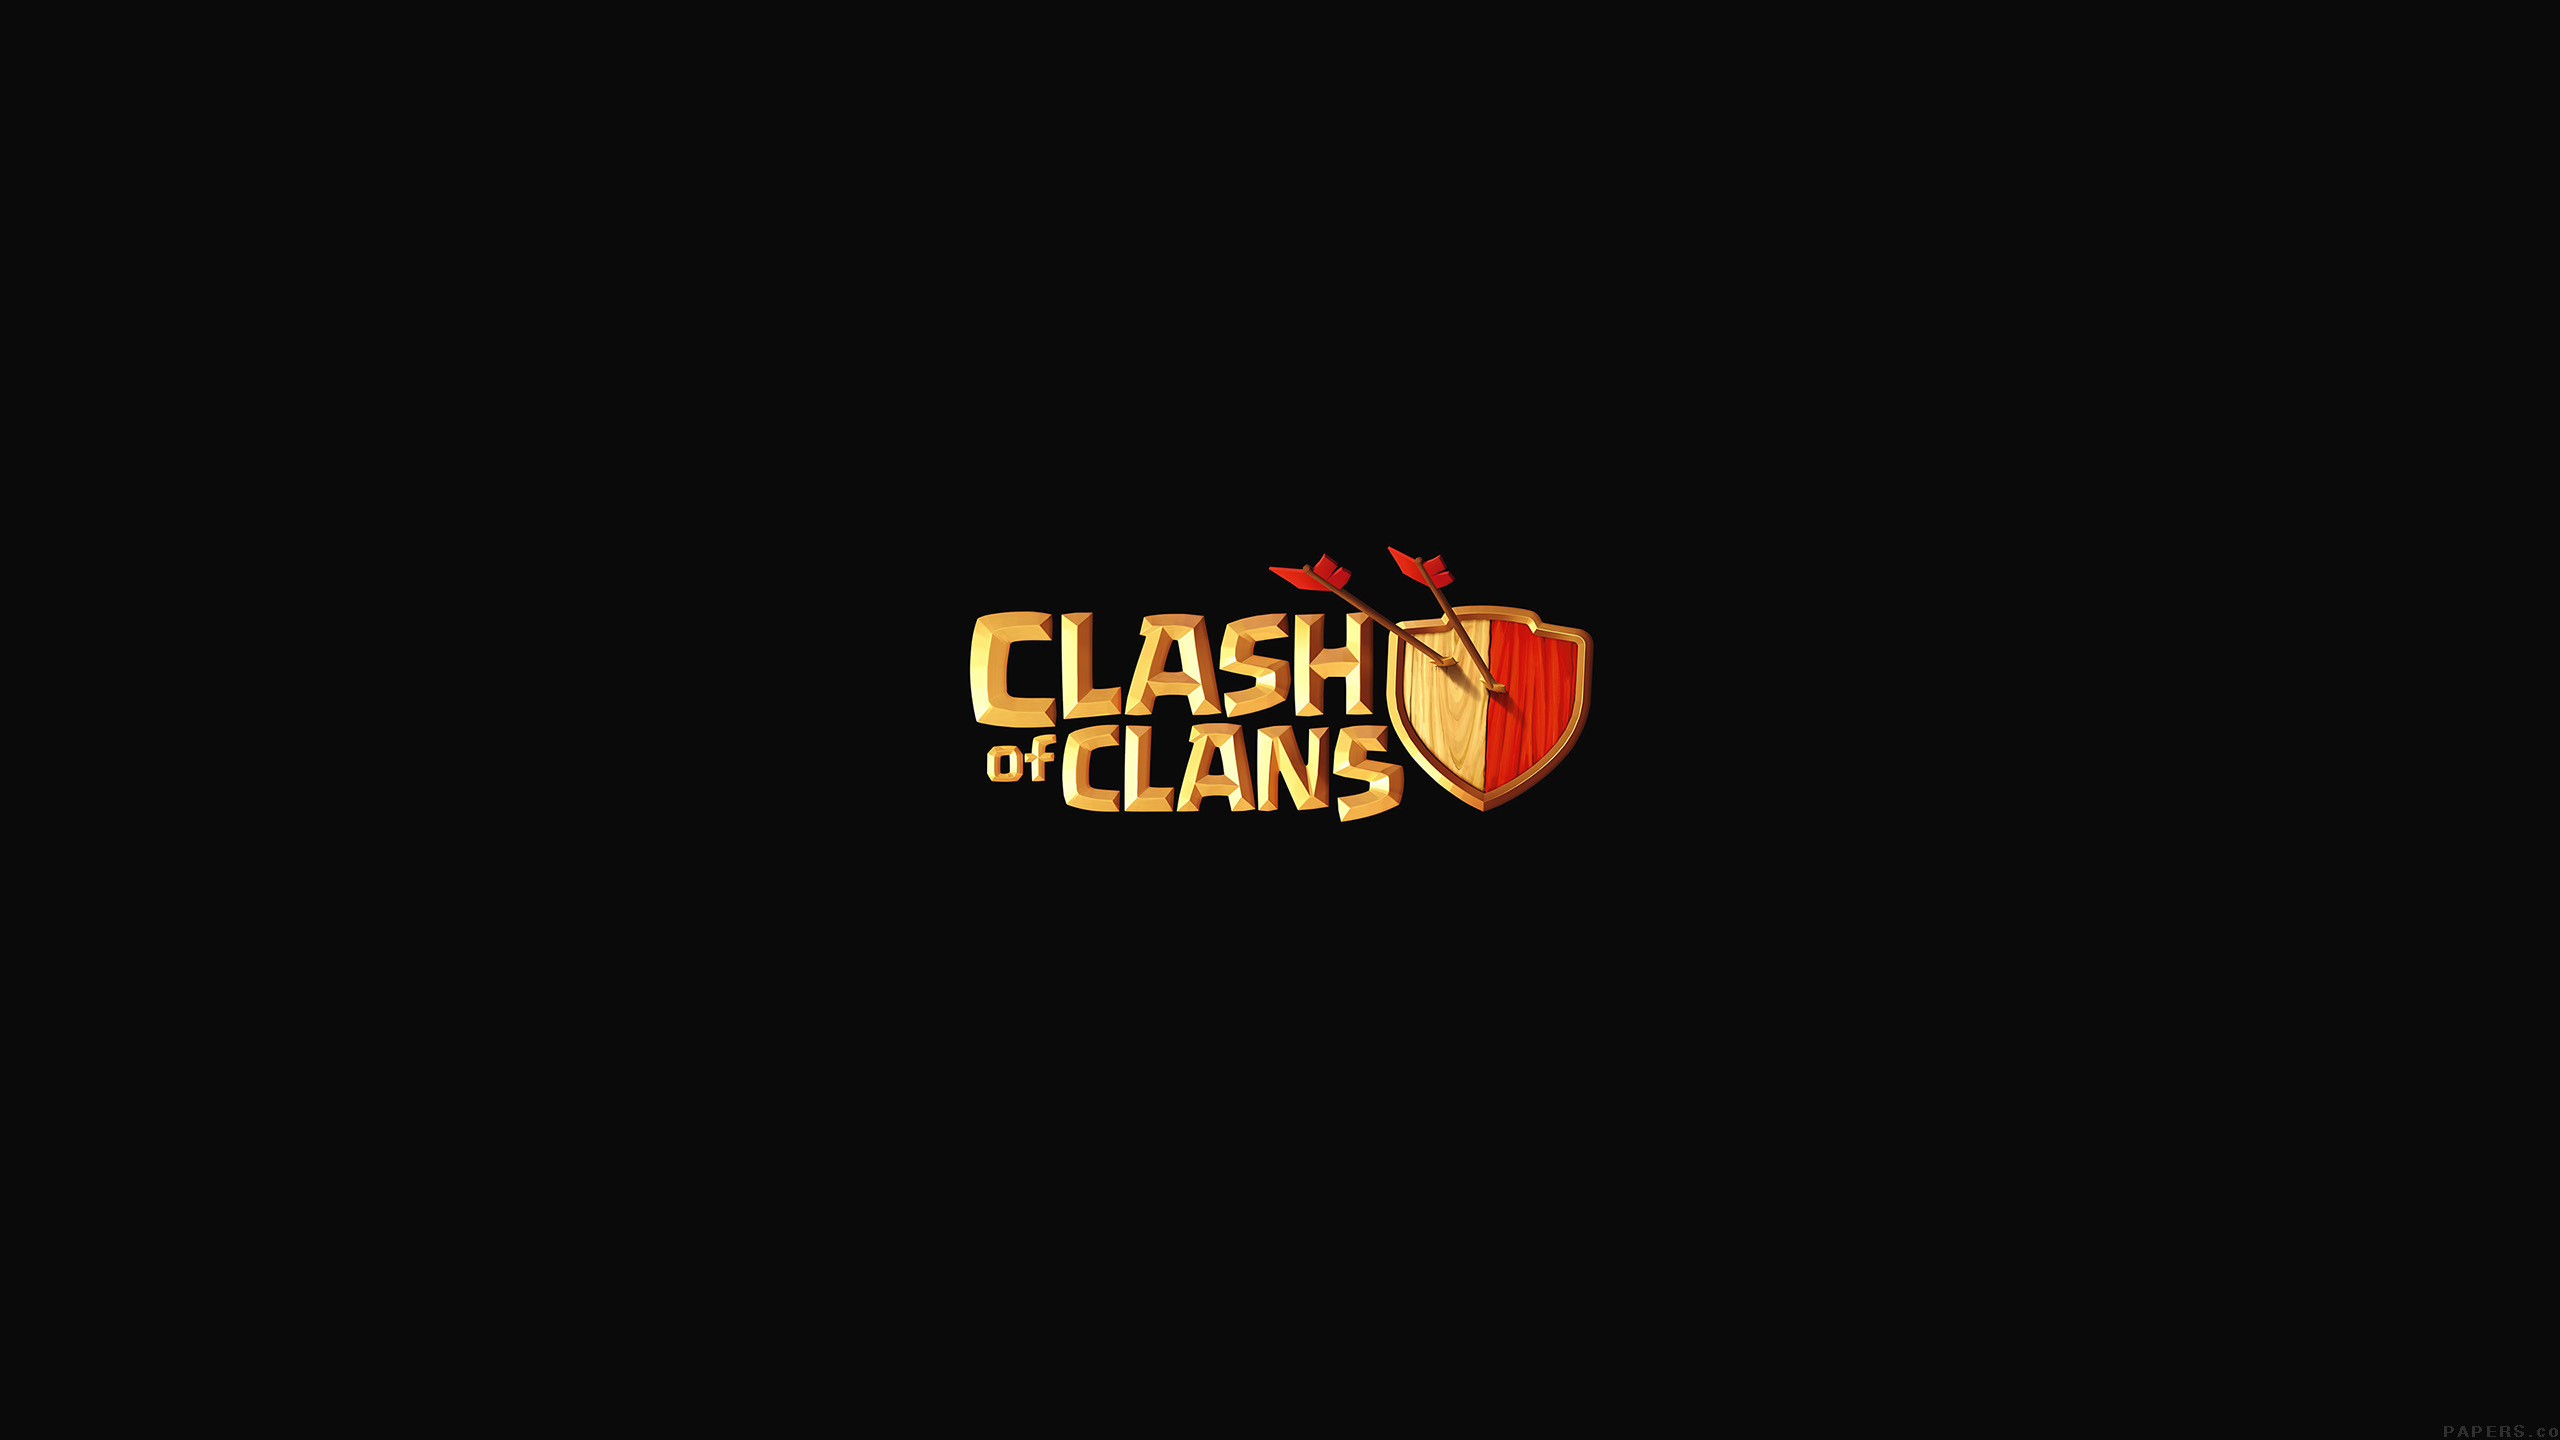 Clash of Clans Logo Wallpaper Background 49063 2560x1440 px